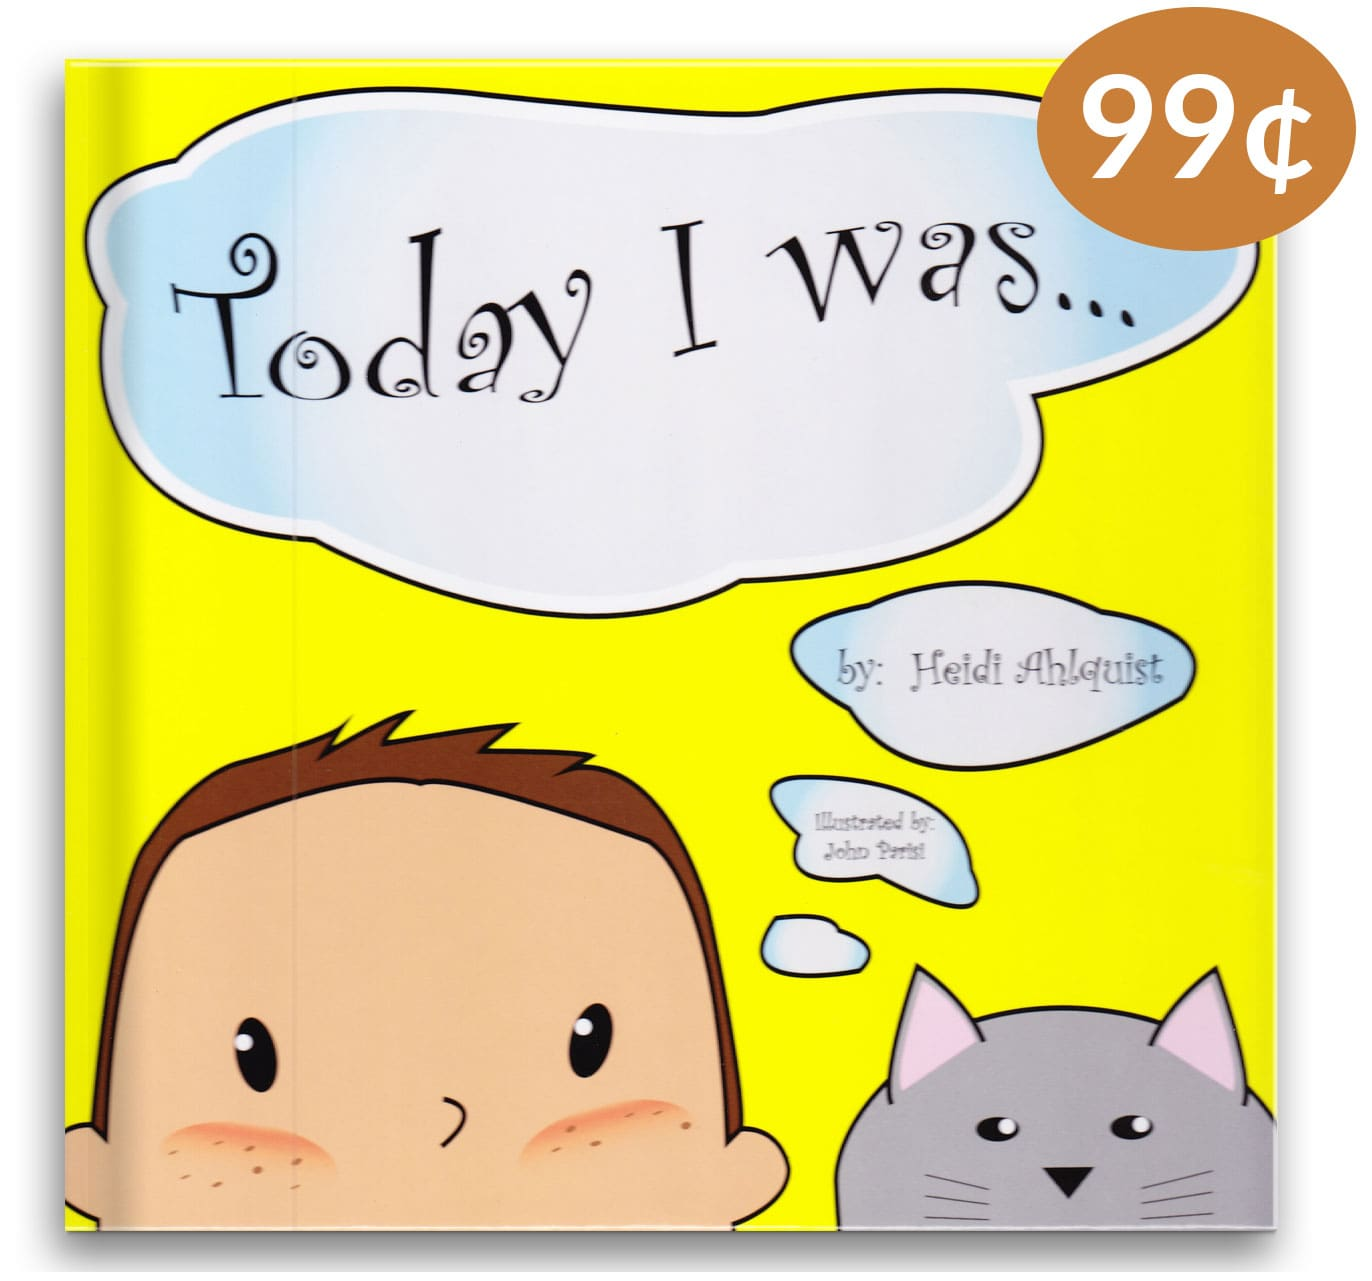 Today I was Children's Book 99 cent deal from Tolman Main Press